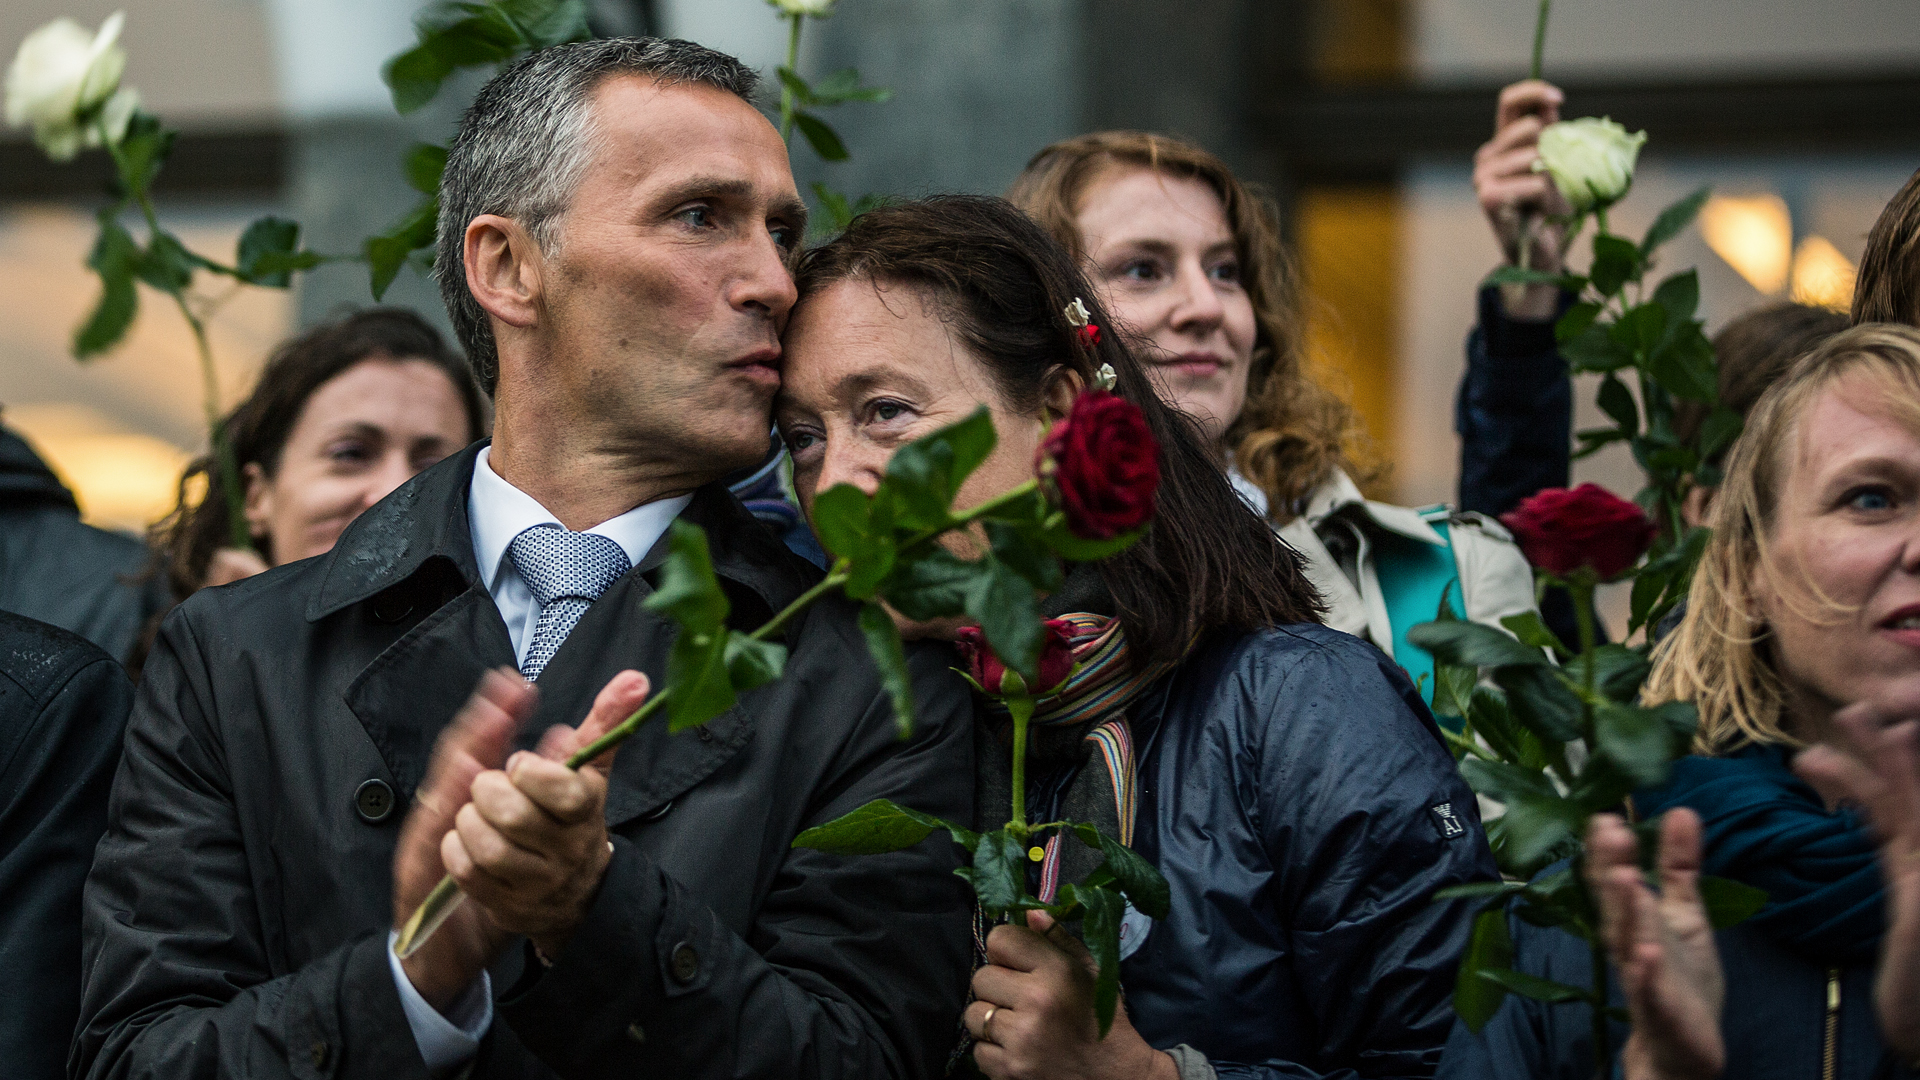 Prime minister Jens Stoltenberg kissing his wife at the 22.7 memorial